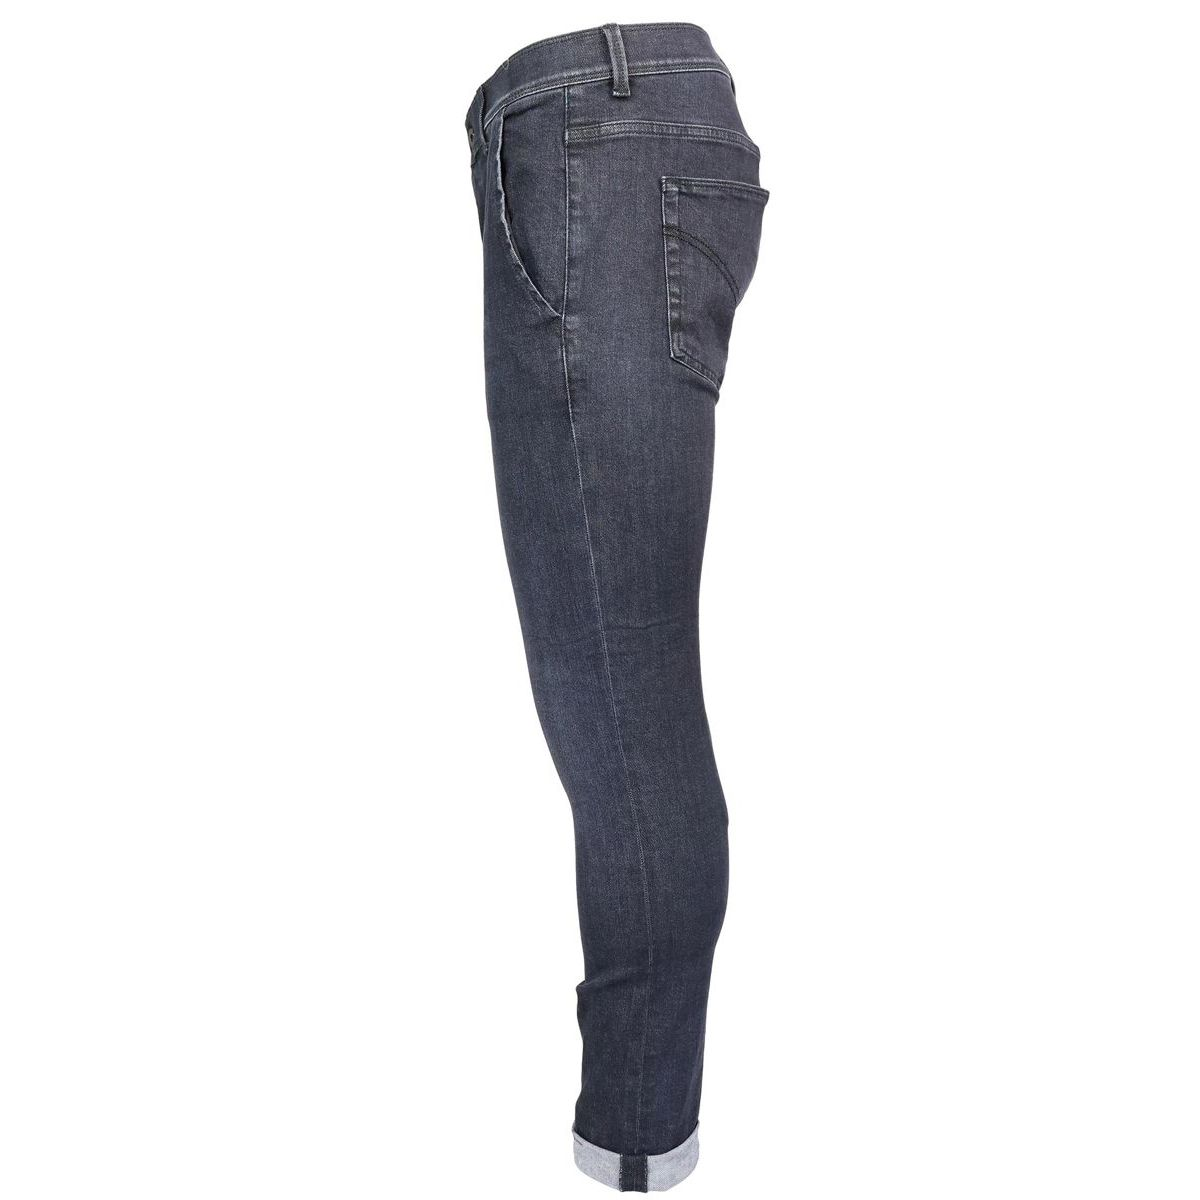 Konor skinny jeans with america pockets Black Dondup